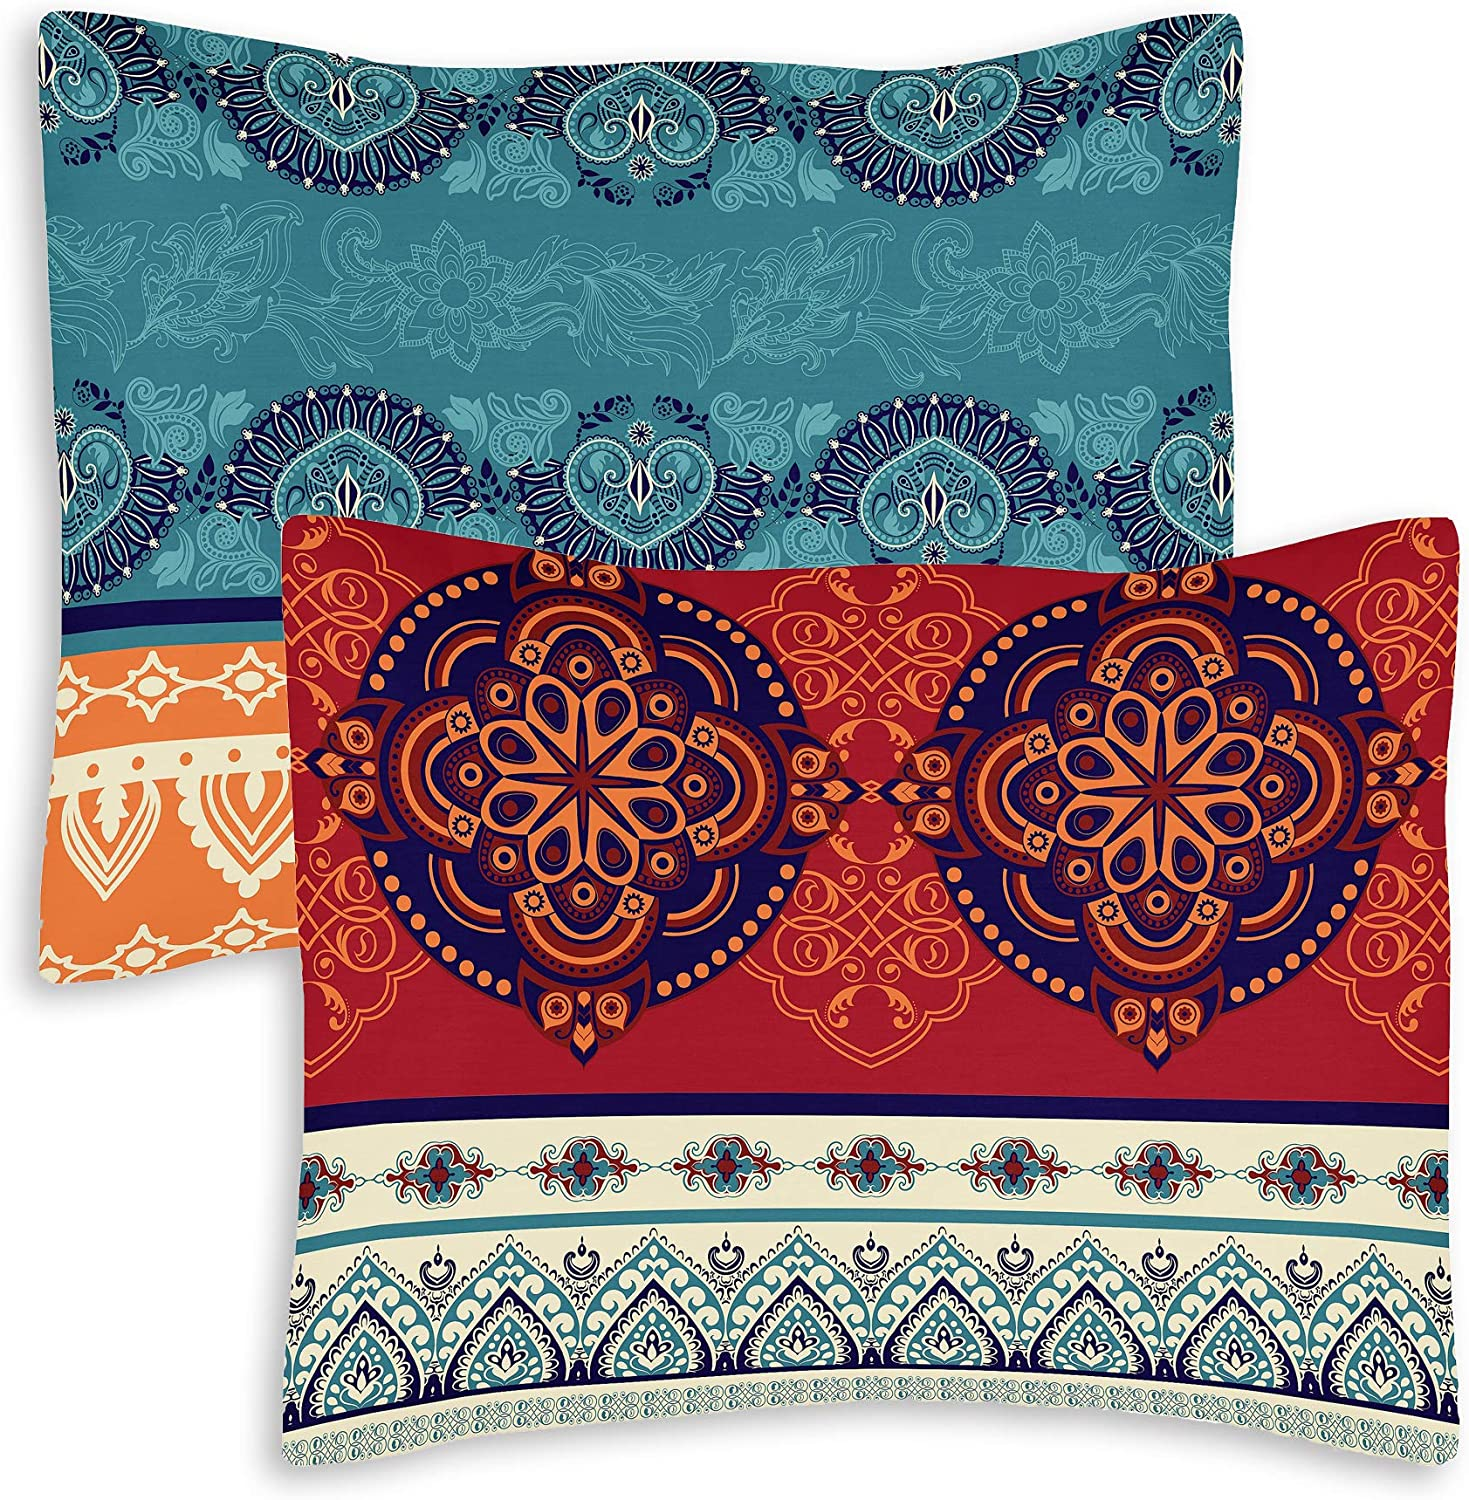 Boho Mandala Bohemian Chic Set of 2 Pillow Cases Standard Queen Pillowcase Sham Cover Set For Bed Red Teal Blue Orange Indian Patterned Turquoise Decorative Accent College Dorm Teen Home Room Décor